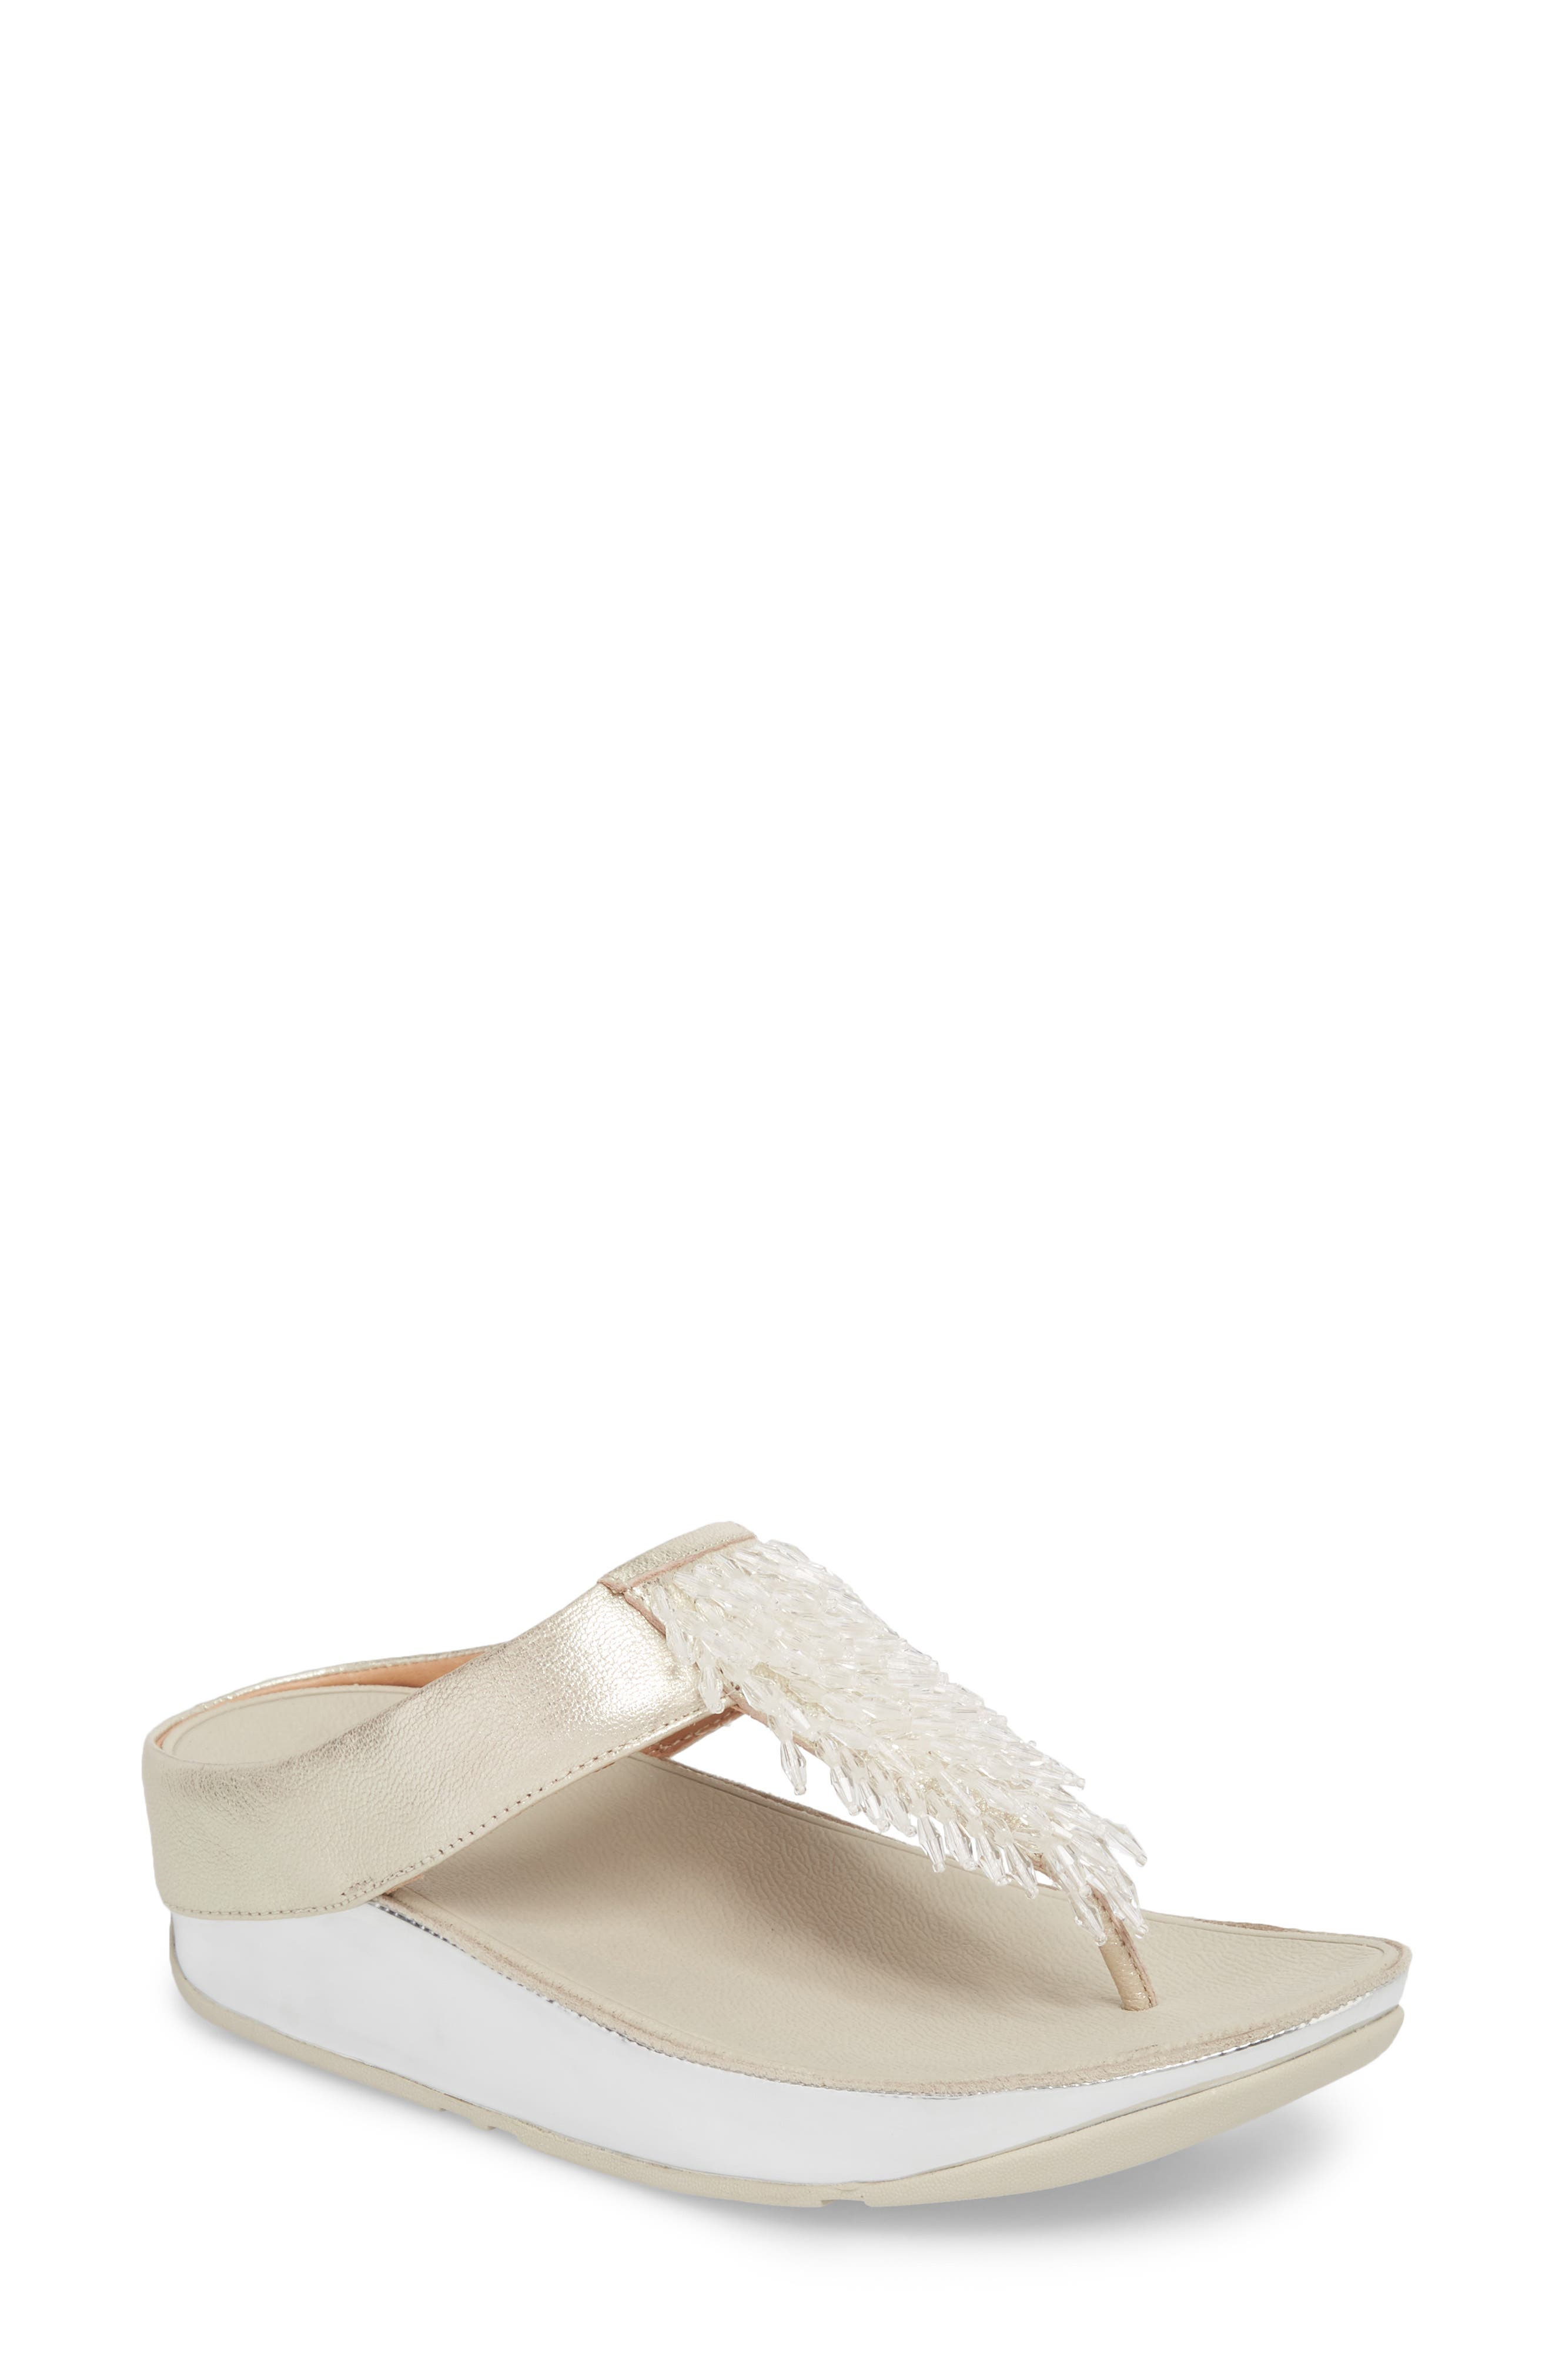 FITFLOP Rumba Flip Flop, Main, color, 040